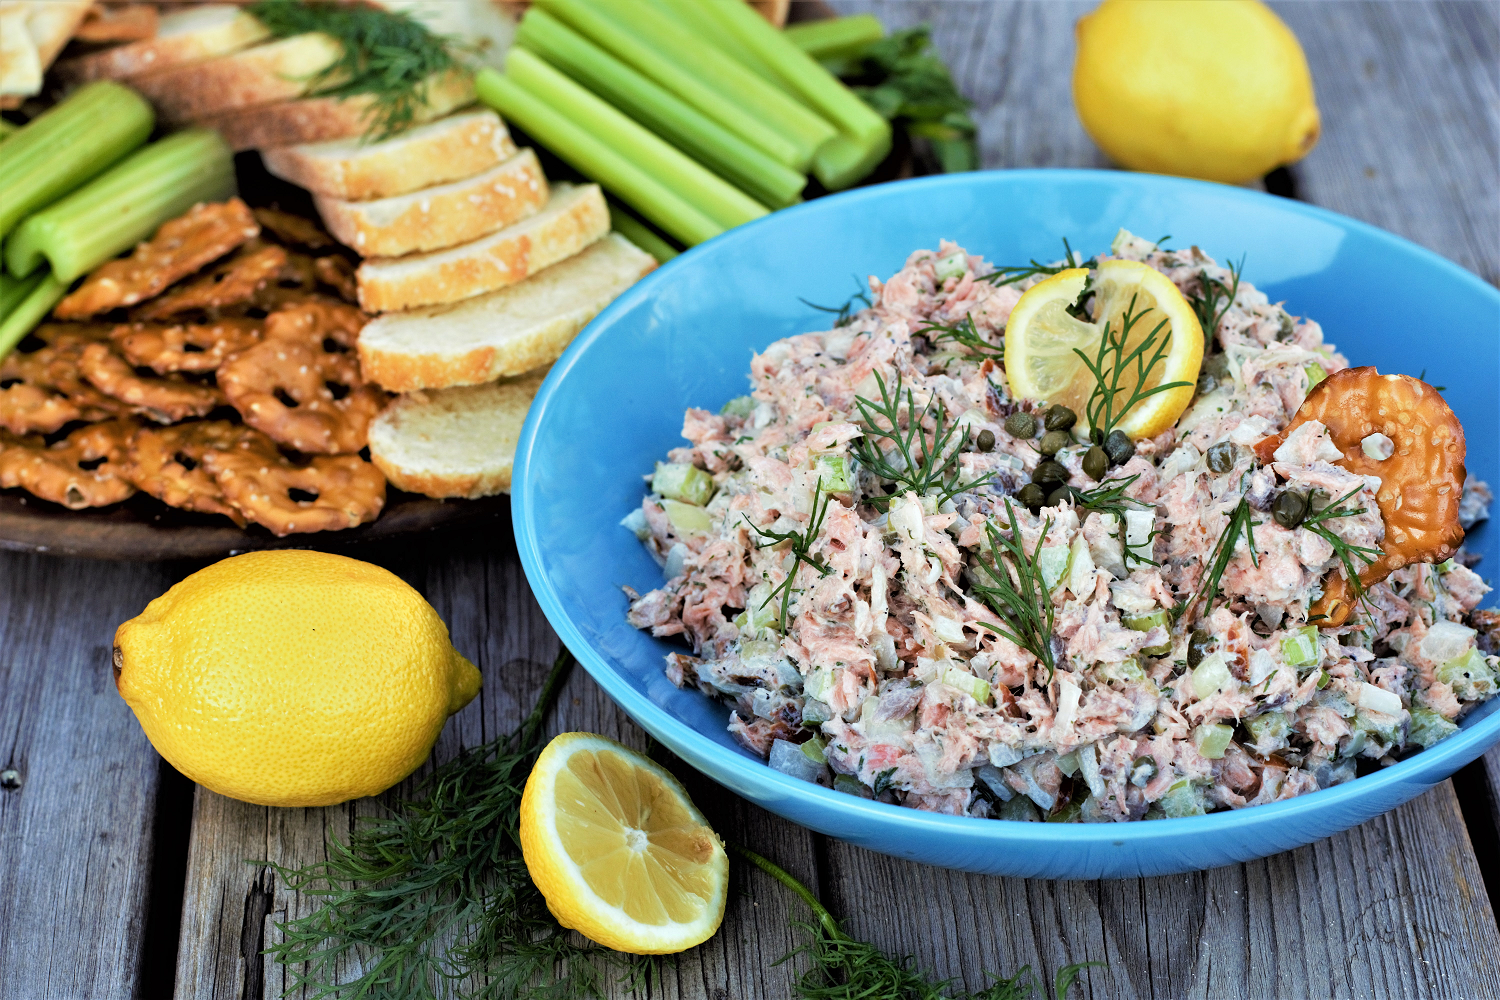 Smoked salmon dip with sweet onion, capers, and fresh dill might just be the easiest, healthiest no-cook holiday appetizer ever!